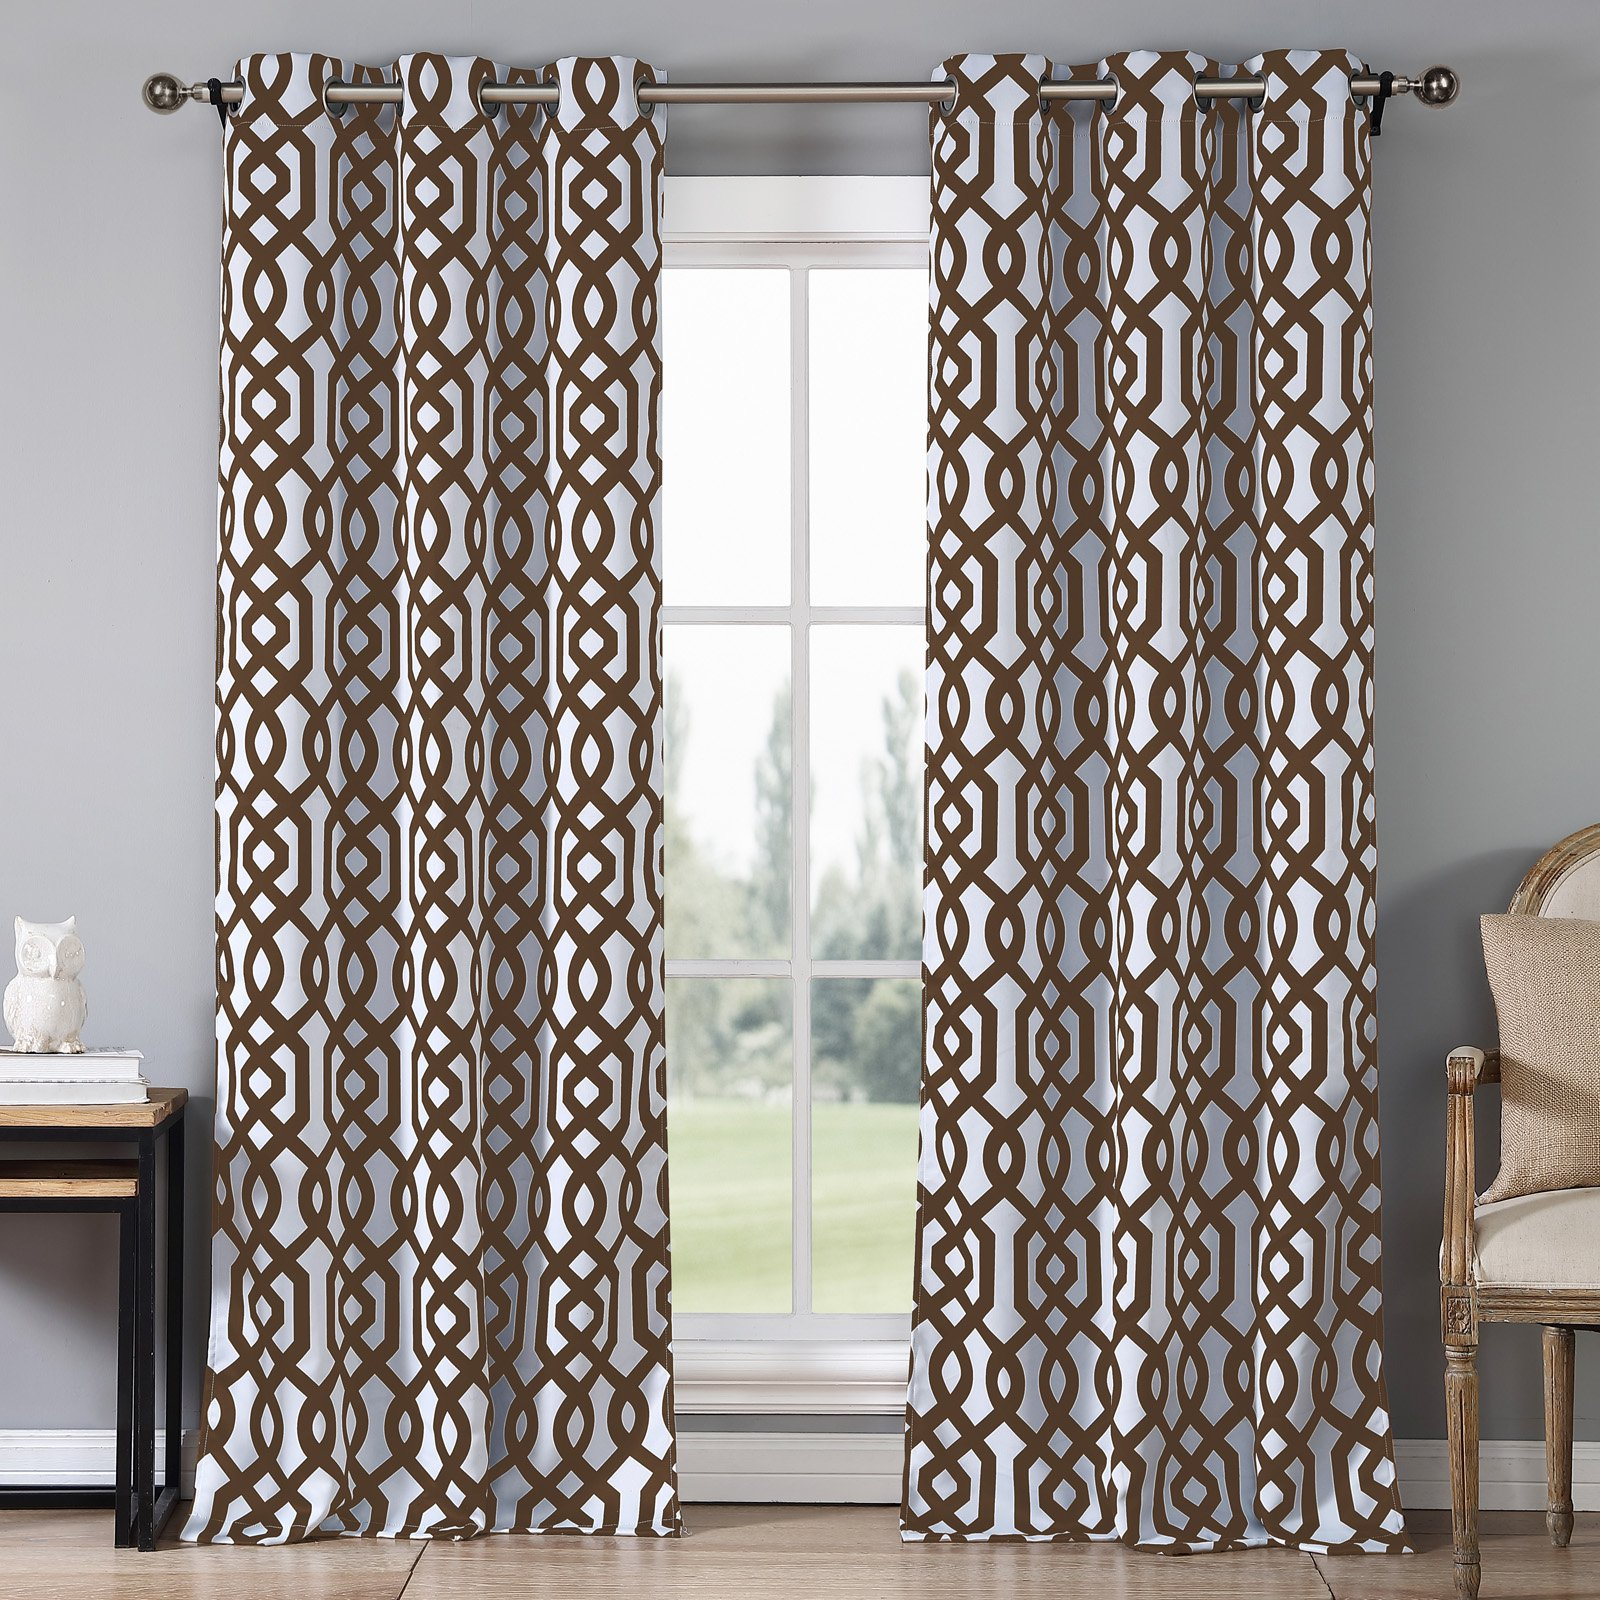 Duck River Ashmont Printed Blackout Grommet Pair Curtain With Primebeau Geometric Pattern Blackout Curtain Pairs (View 11 of 20)